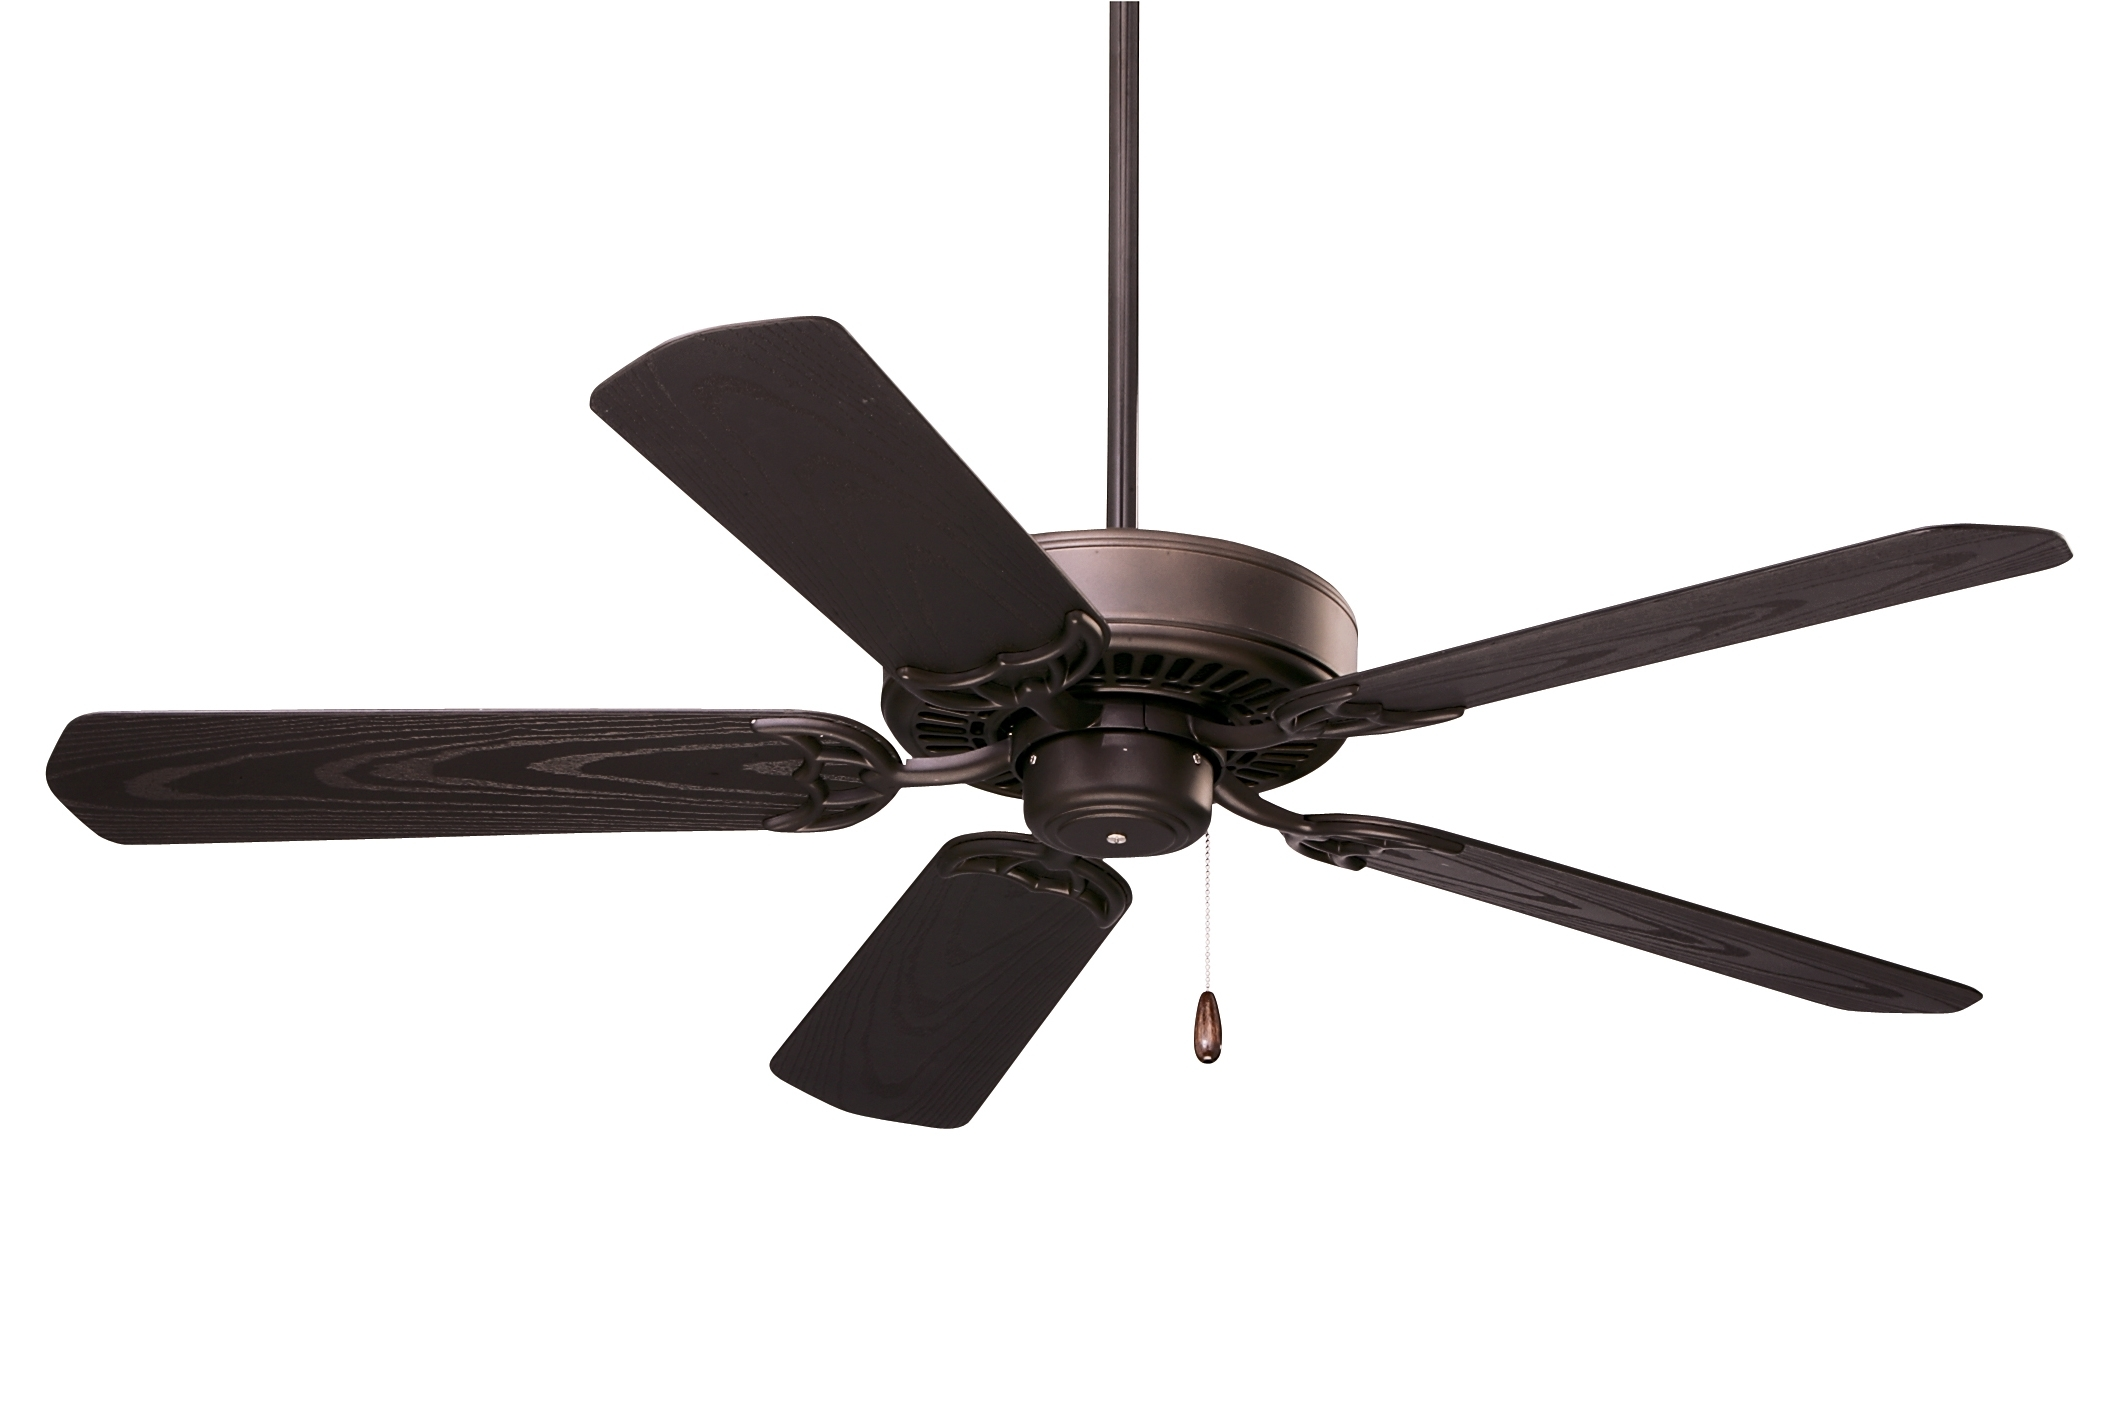 "Emerson Outdoor Ceiling Fans With Lights For Most Current Emerson Ceiling Fans Indoor/outdoor 52"" Summer Night : Lighting Etc (View 2 of 20)"